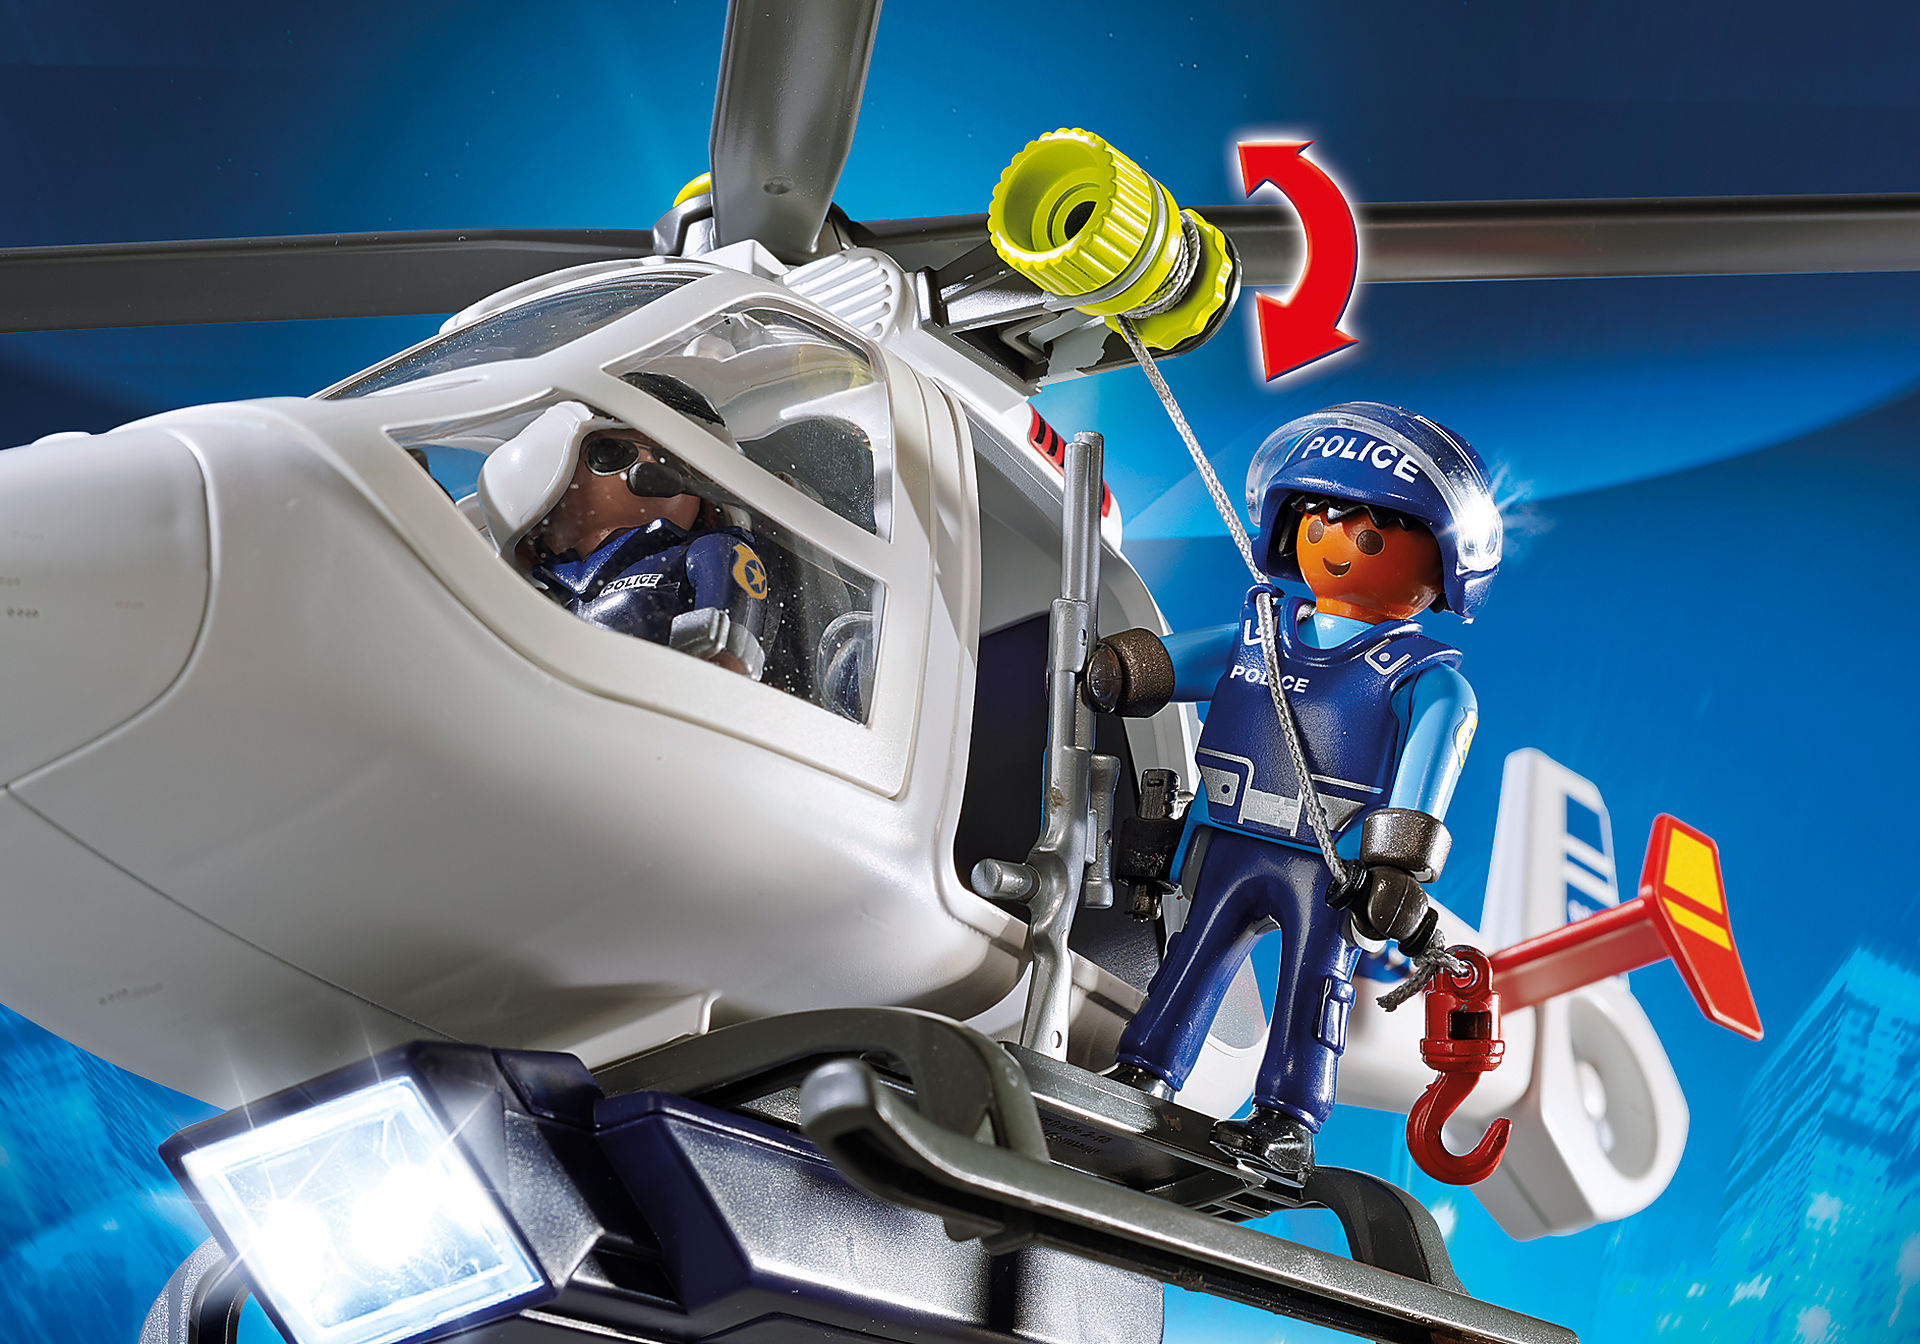 http://media.playmobil.com/i/playmobil/6921_product_extra2/Police Helicopter with LED Searchlight